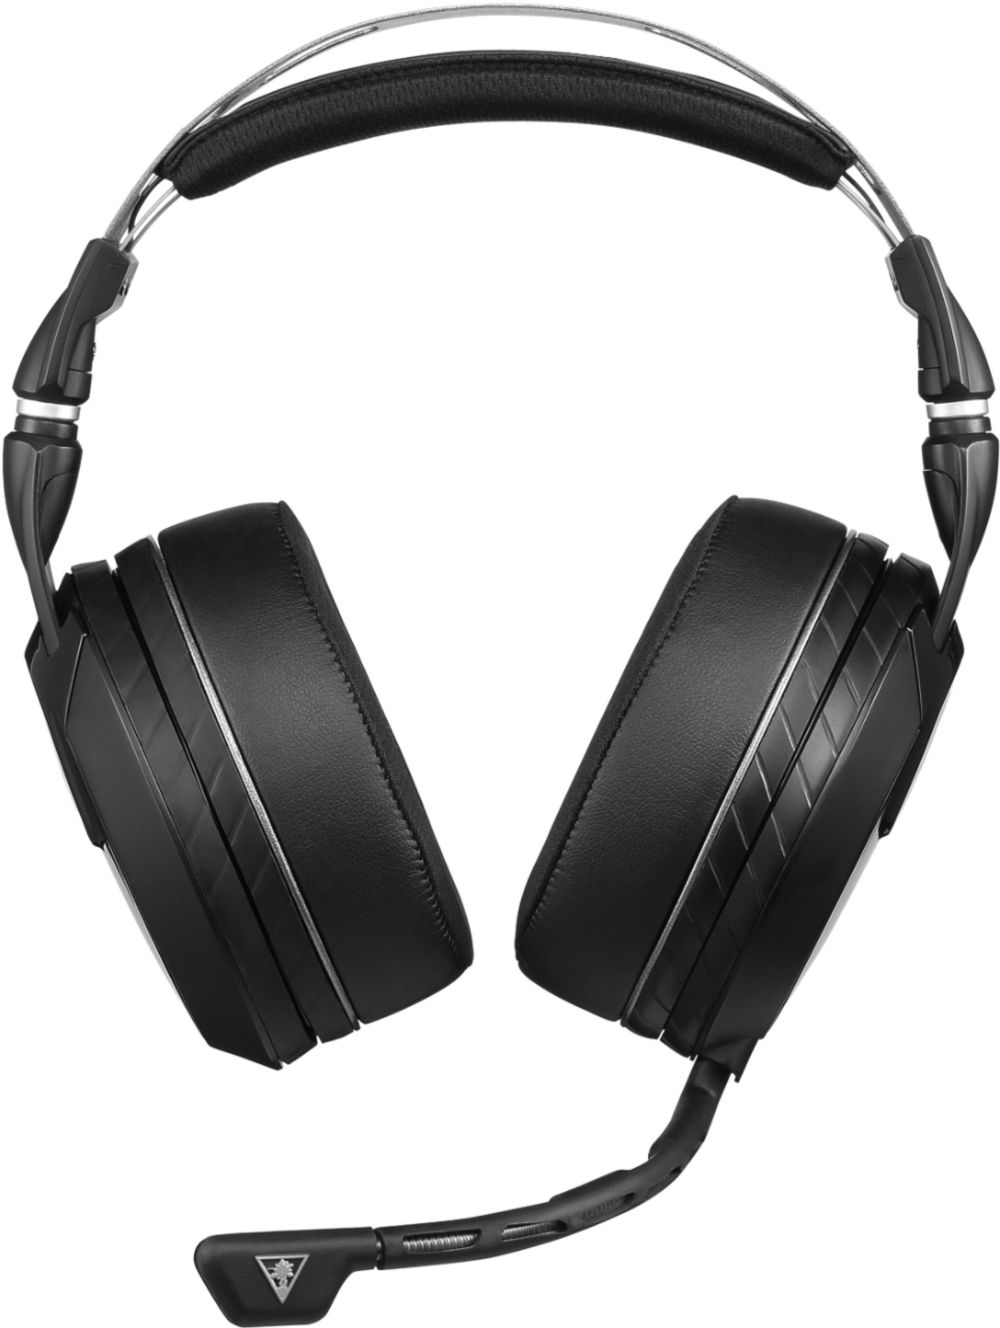 medium resolution of  turtle beach elite atlas wired stereo gaming headset for pc black alt view zoom 11